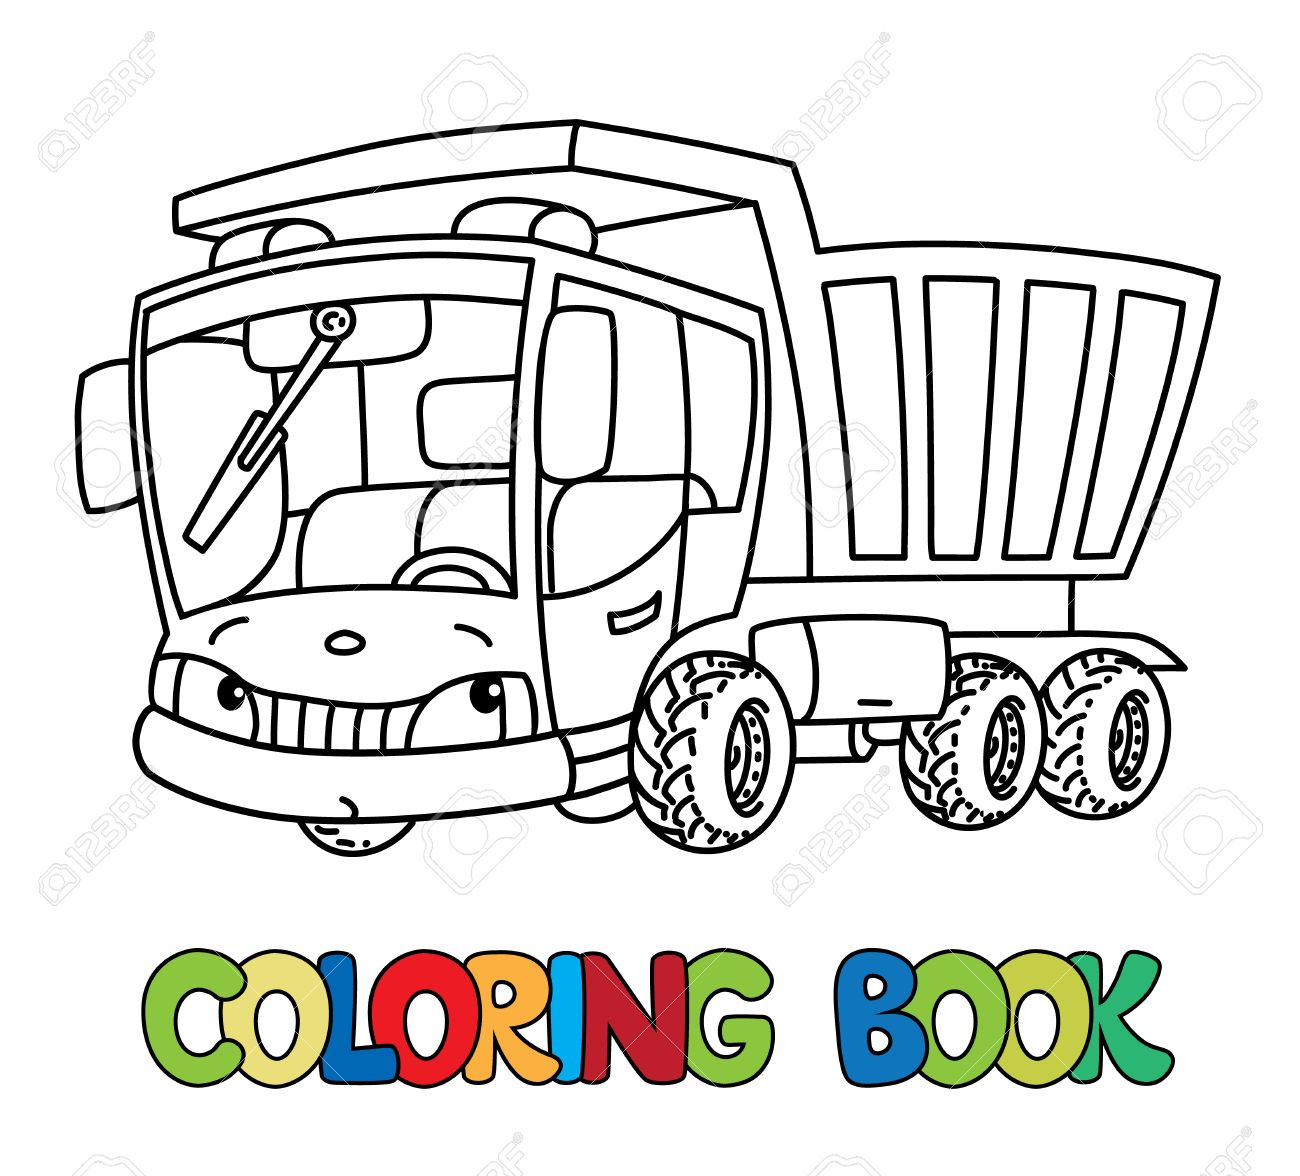 dump truck or lorry coloring book for kids small funny vector